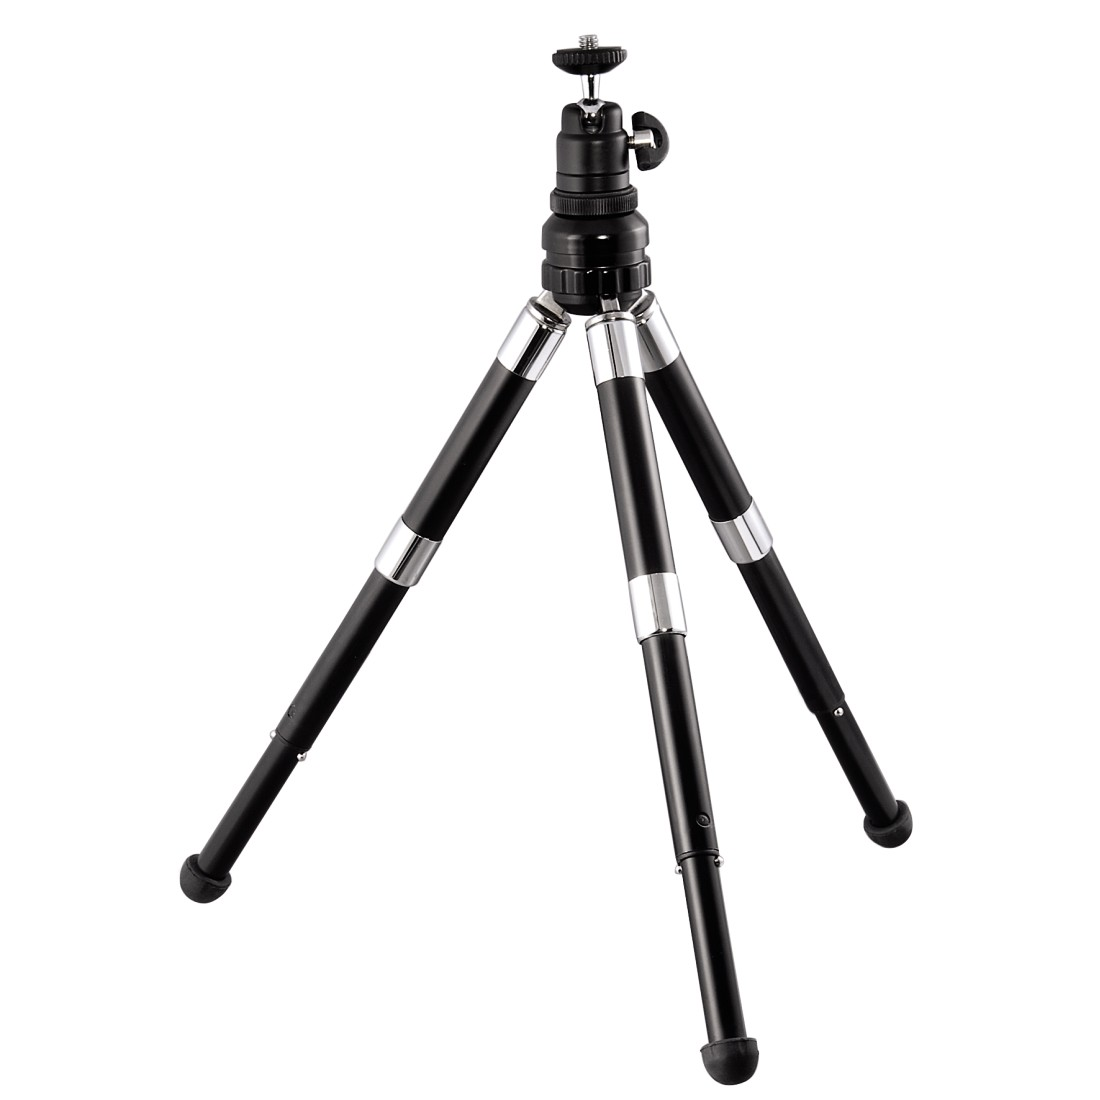 abx6 High-Res Image 6 - Hama, Traveller Multi Table Top Tripod, with Removable Telescopic Tube